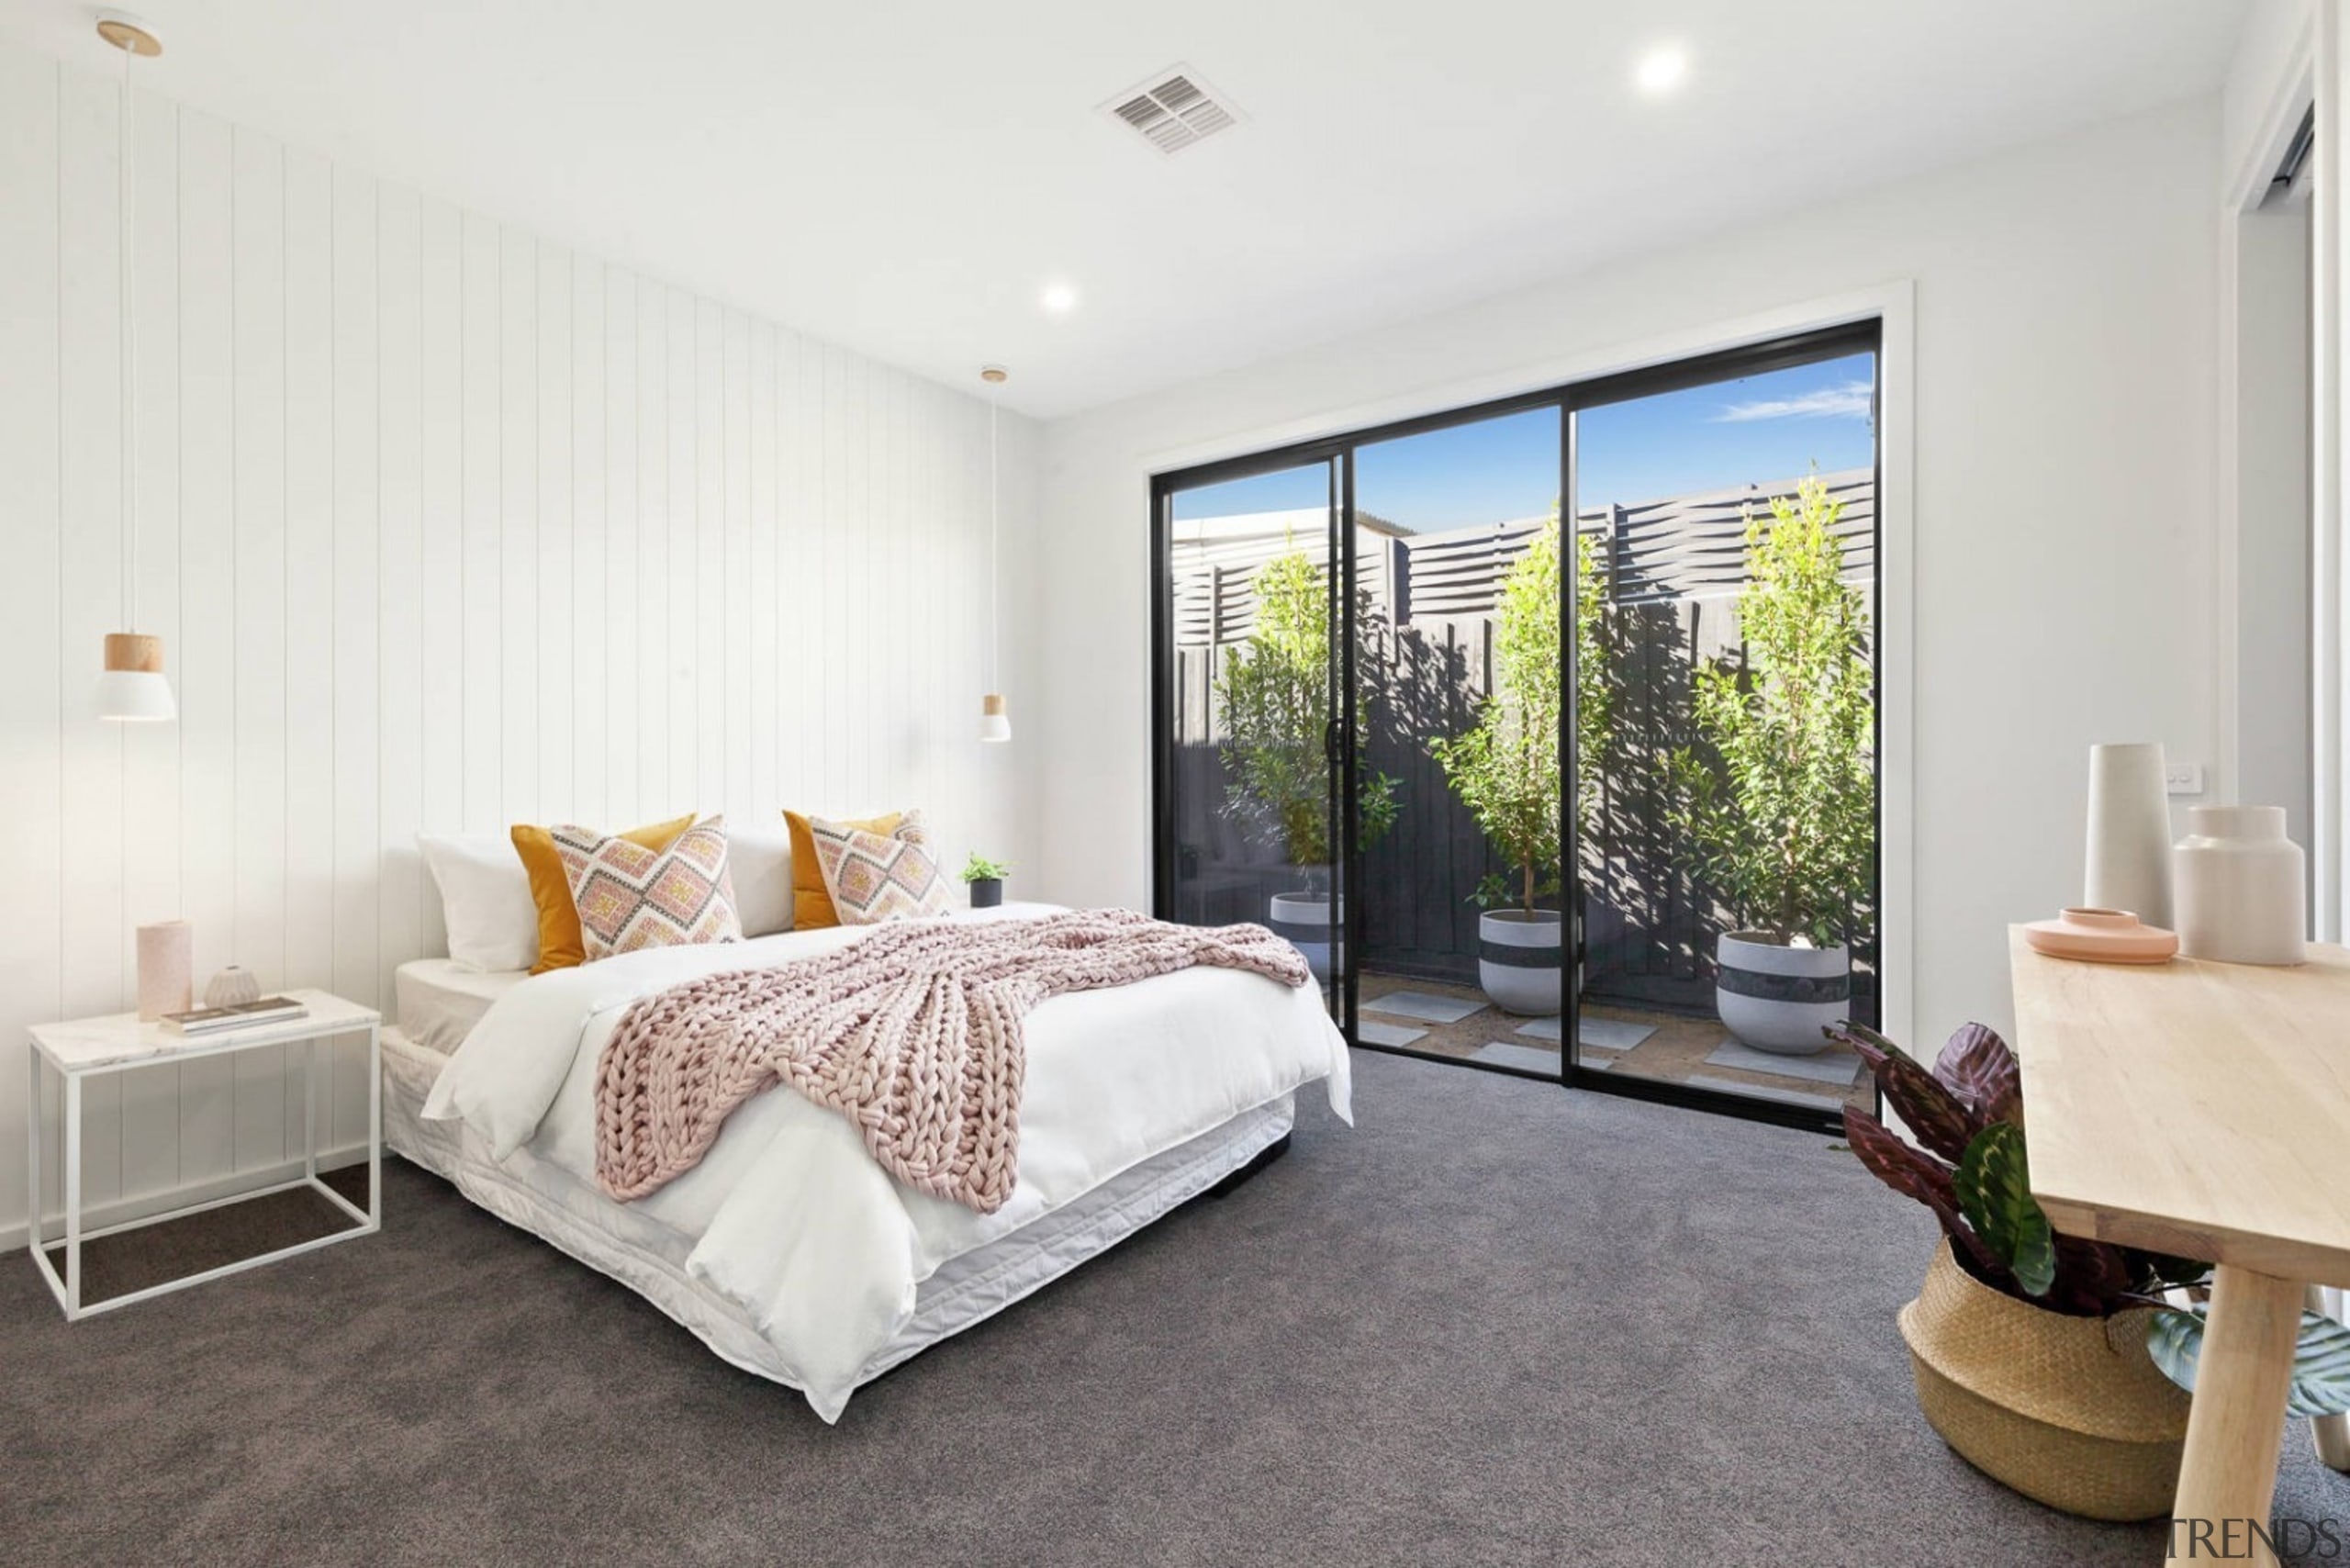 This ground floor bedroom faces out to a bed frame, bedroom, ceiling, estate, floor, home, interior design, property, real estate, room, window, white